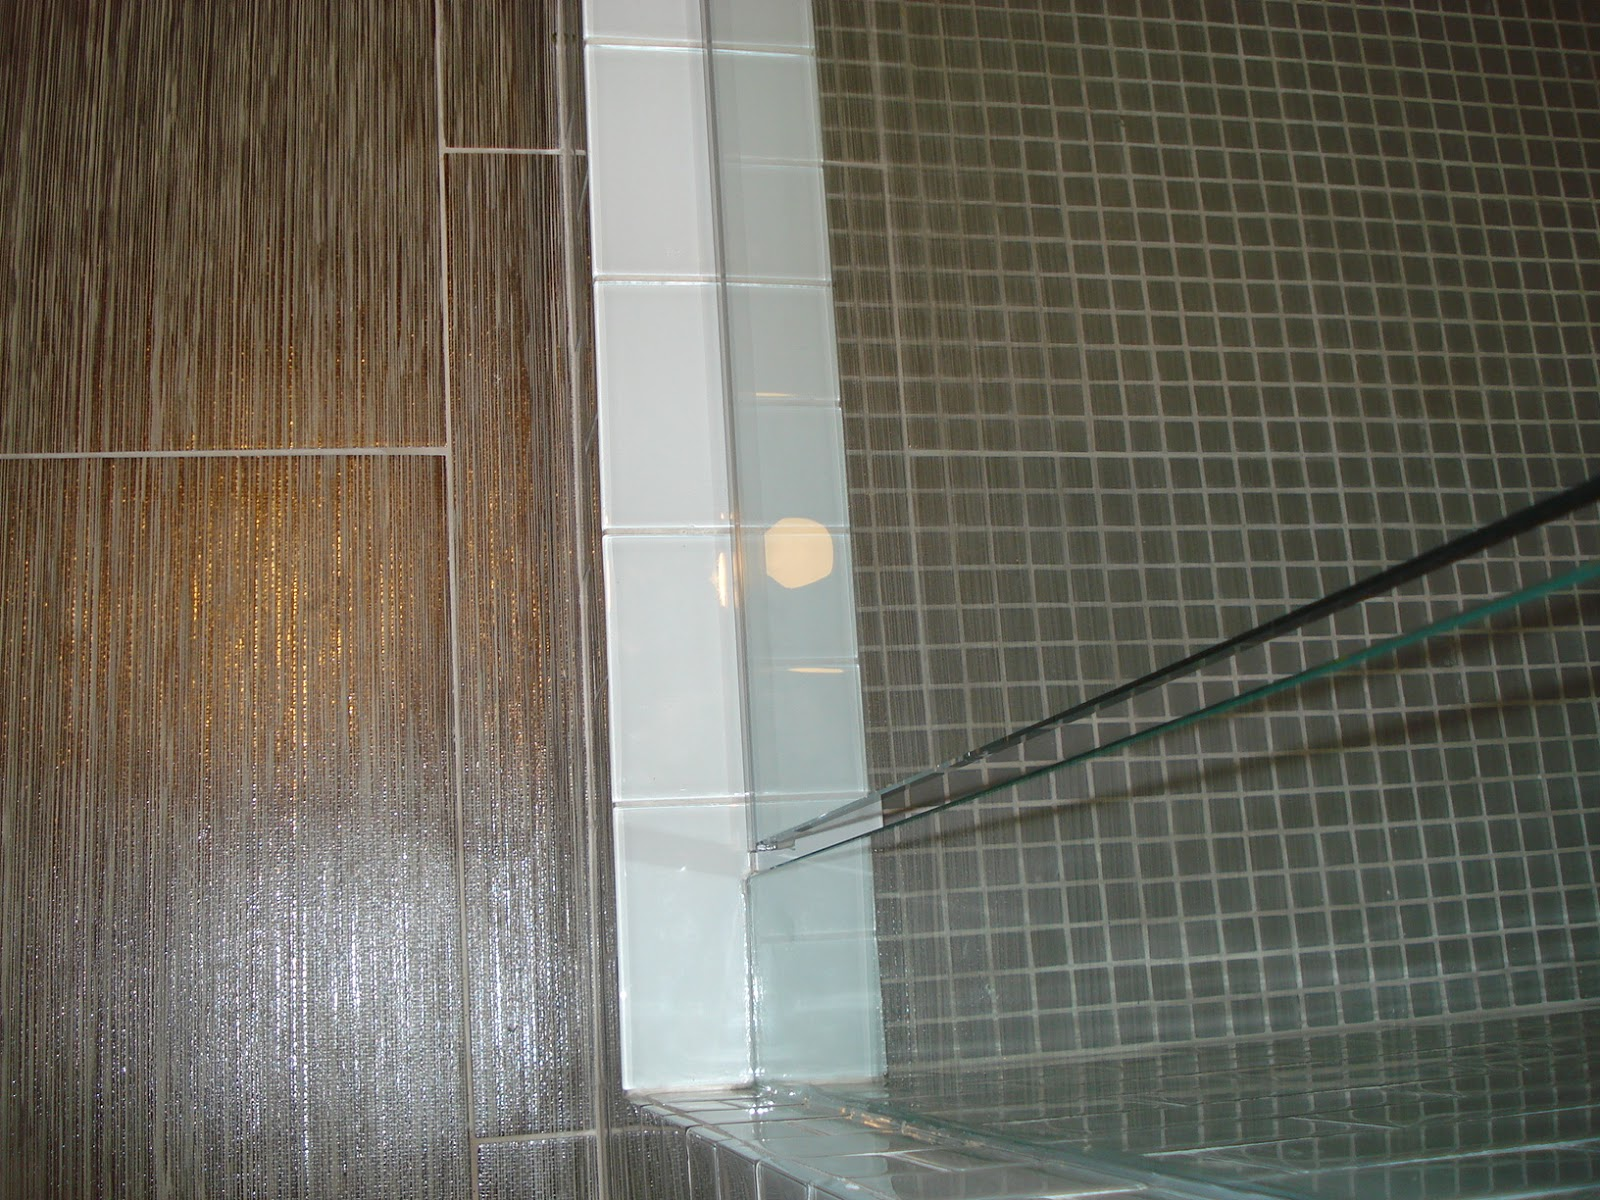 Reasons for selecting the right shower tile confessions of a reasons for selecting the right shower tile dailygadgetfo Gallery